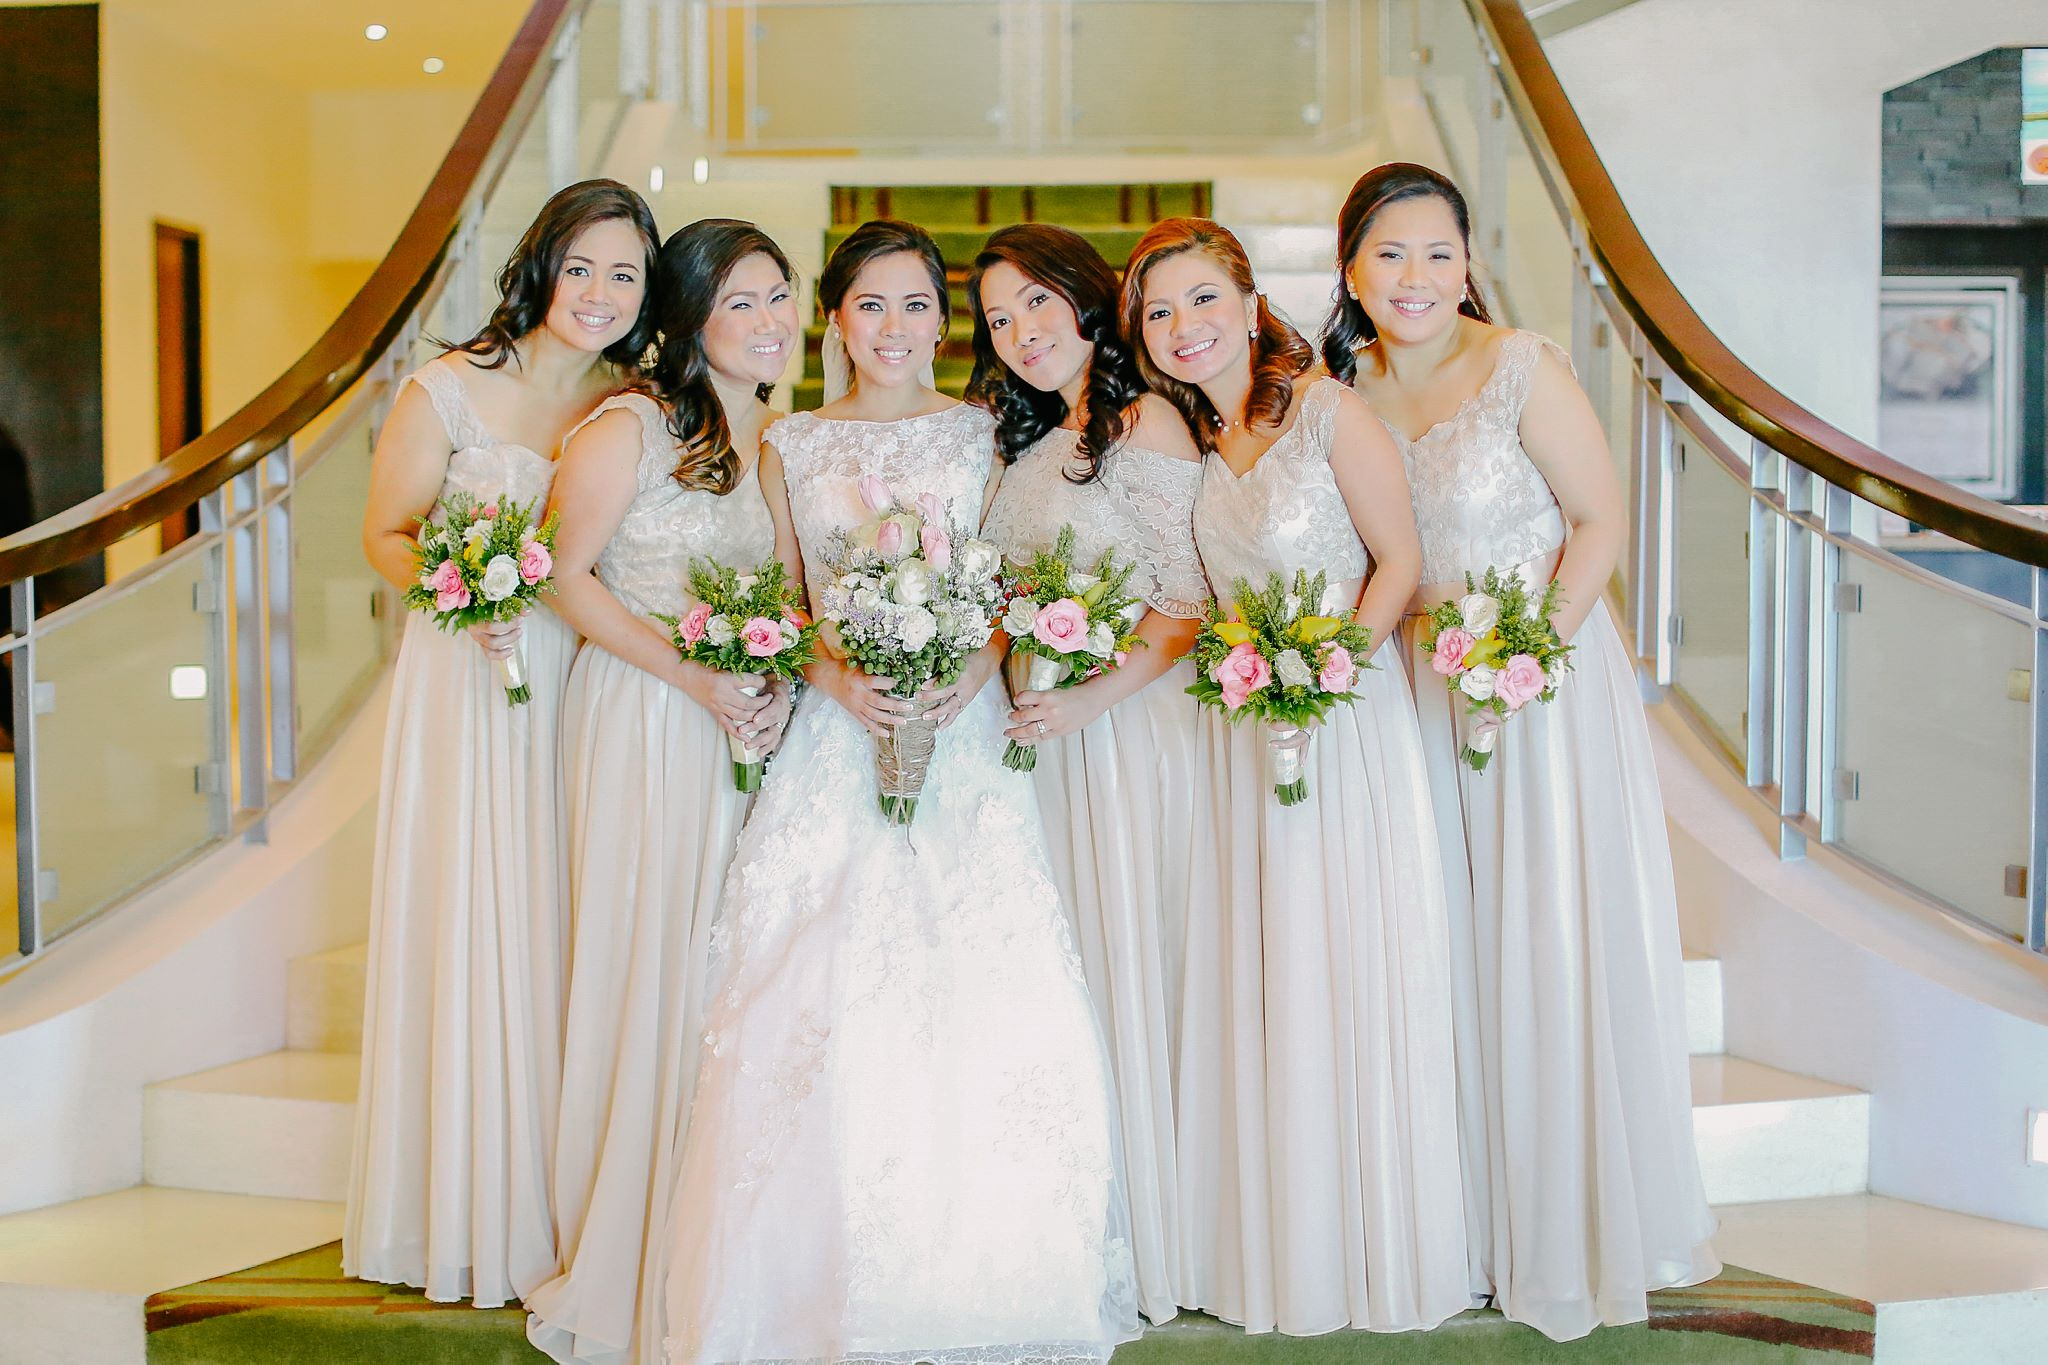 Wedding Entourage Gown Rental Philippines Raveitsafe